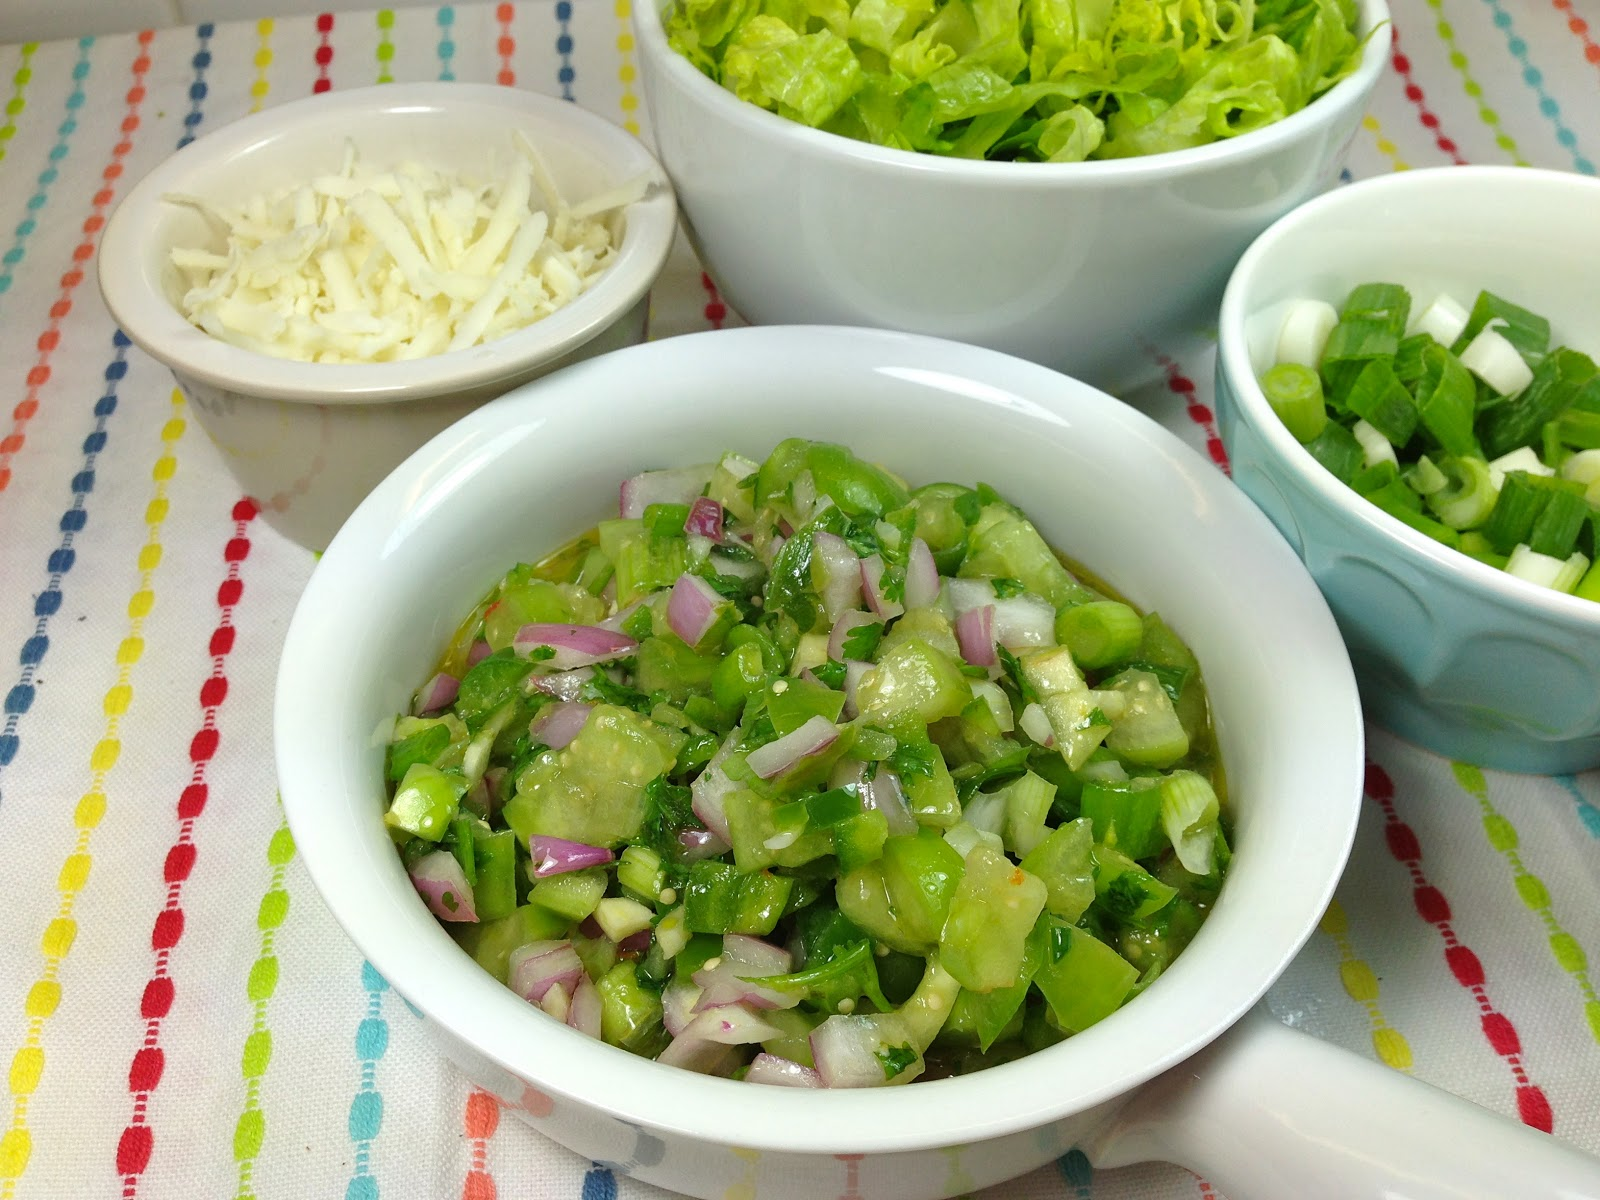 Tomatillo Pico de Gallo, Shredded Romaine, and Queso Blanco, Photo: NK